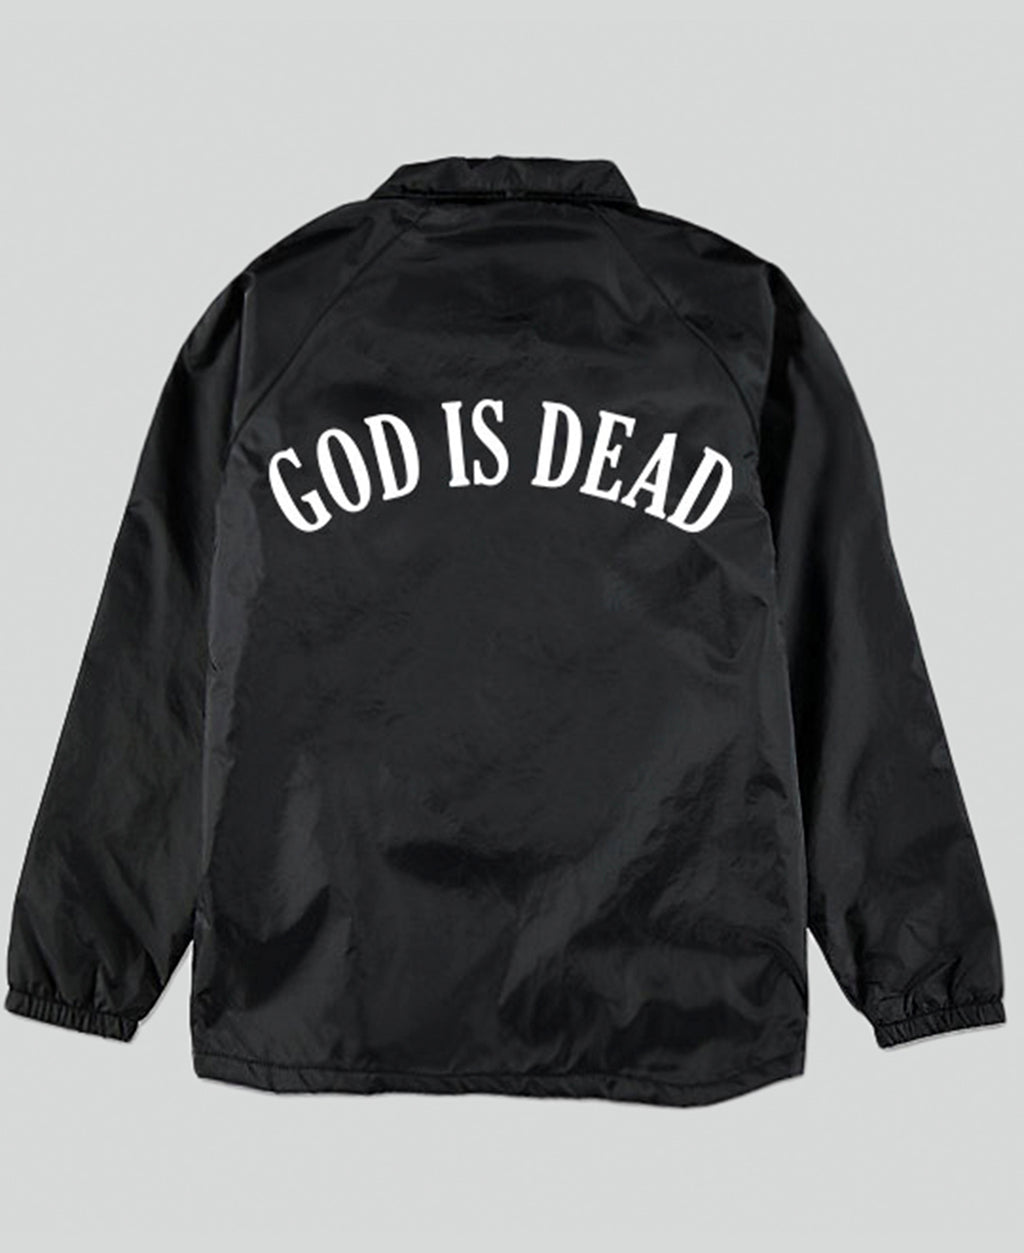 God Is Dead Jacket - The Anti Life